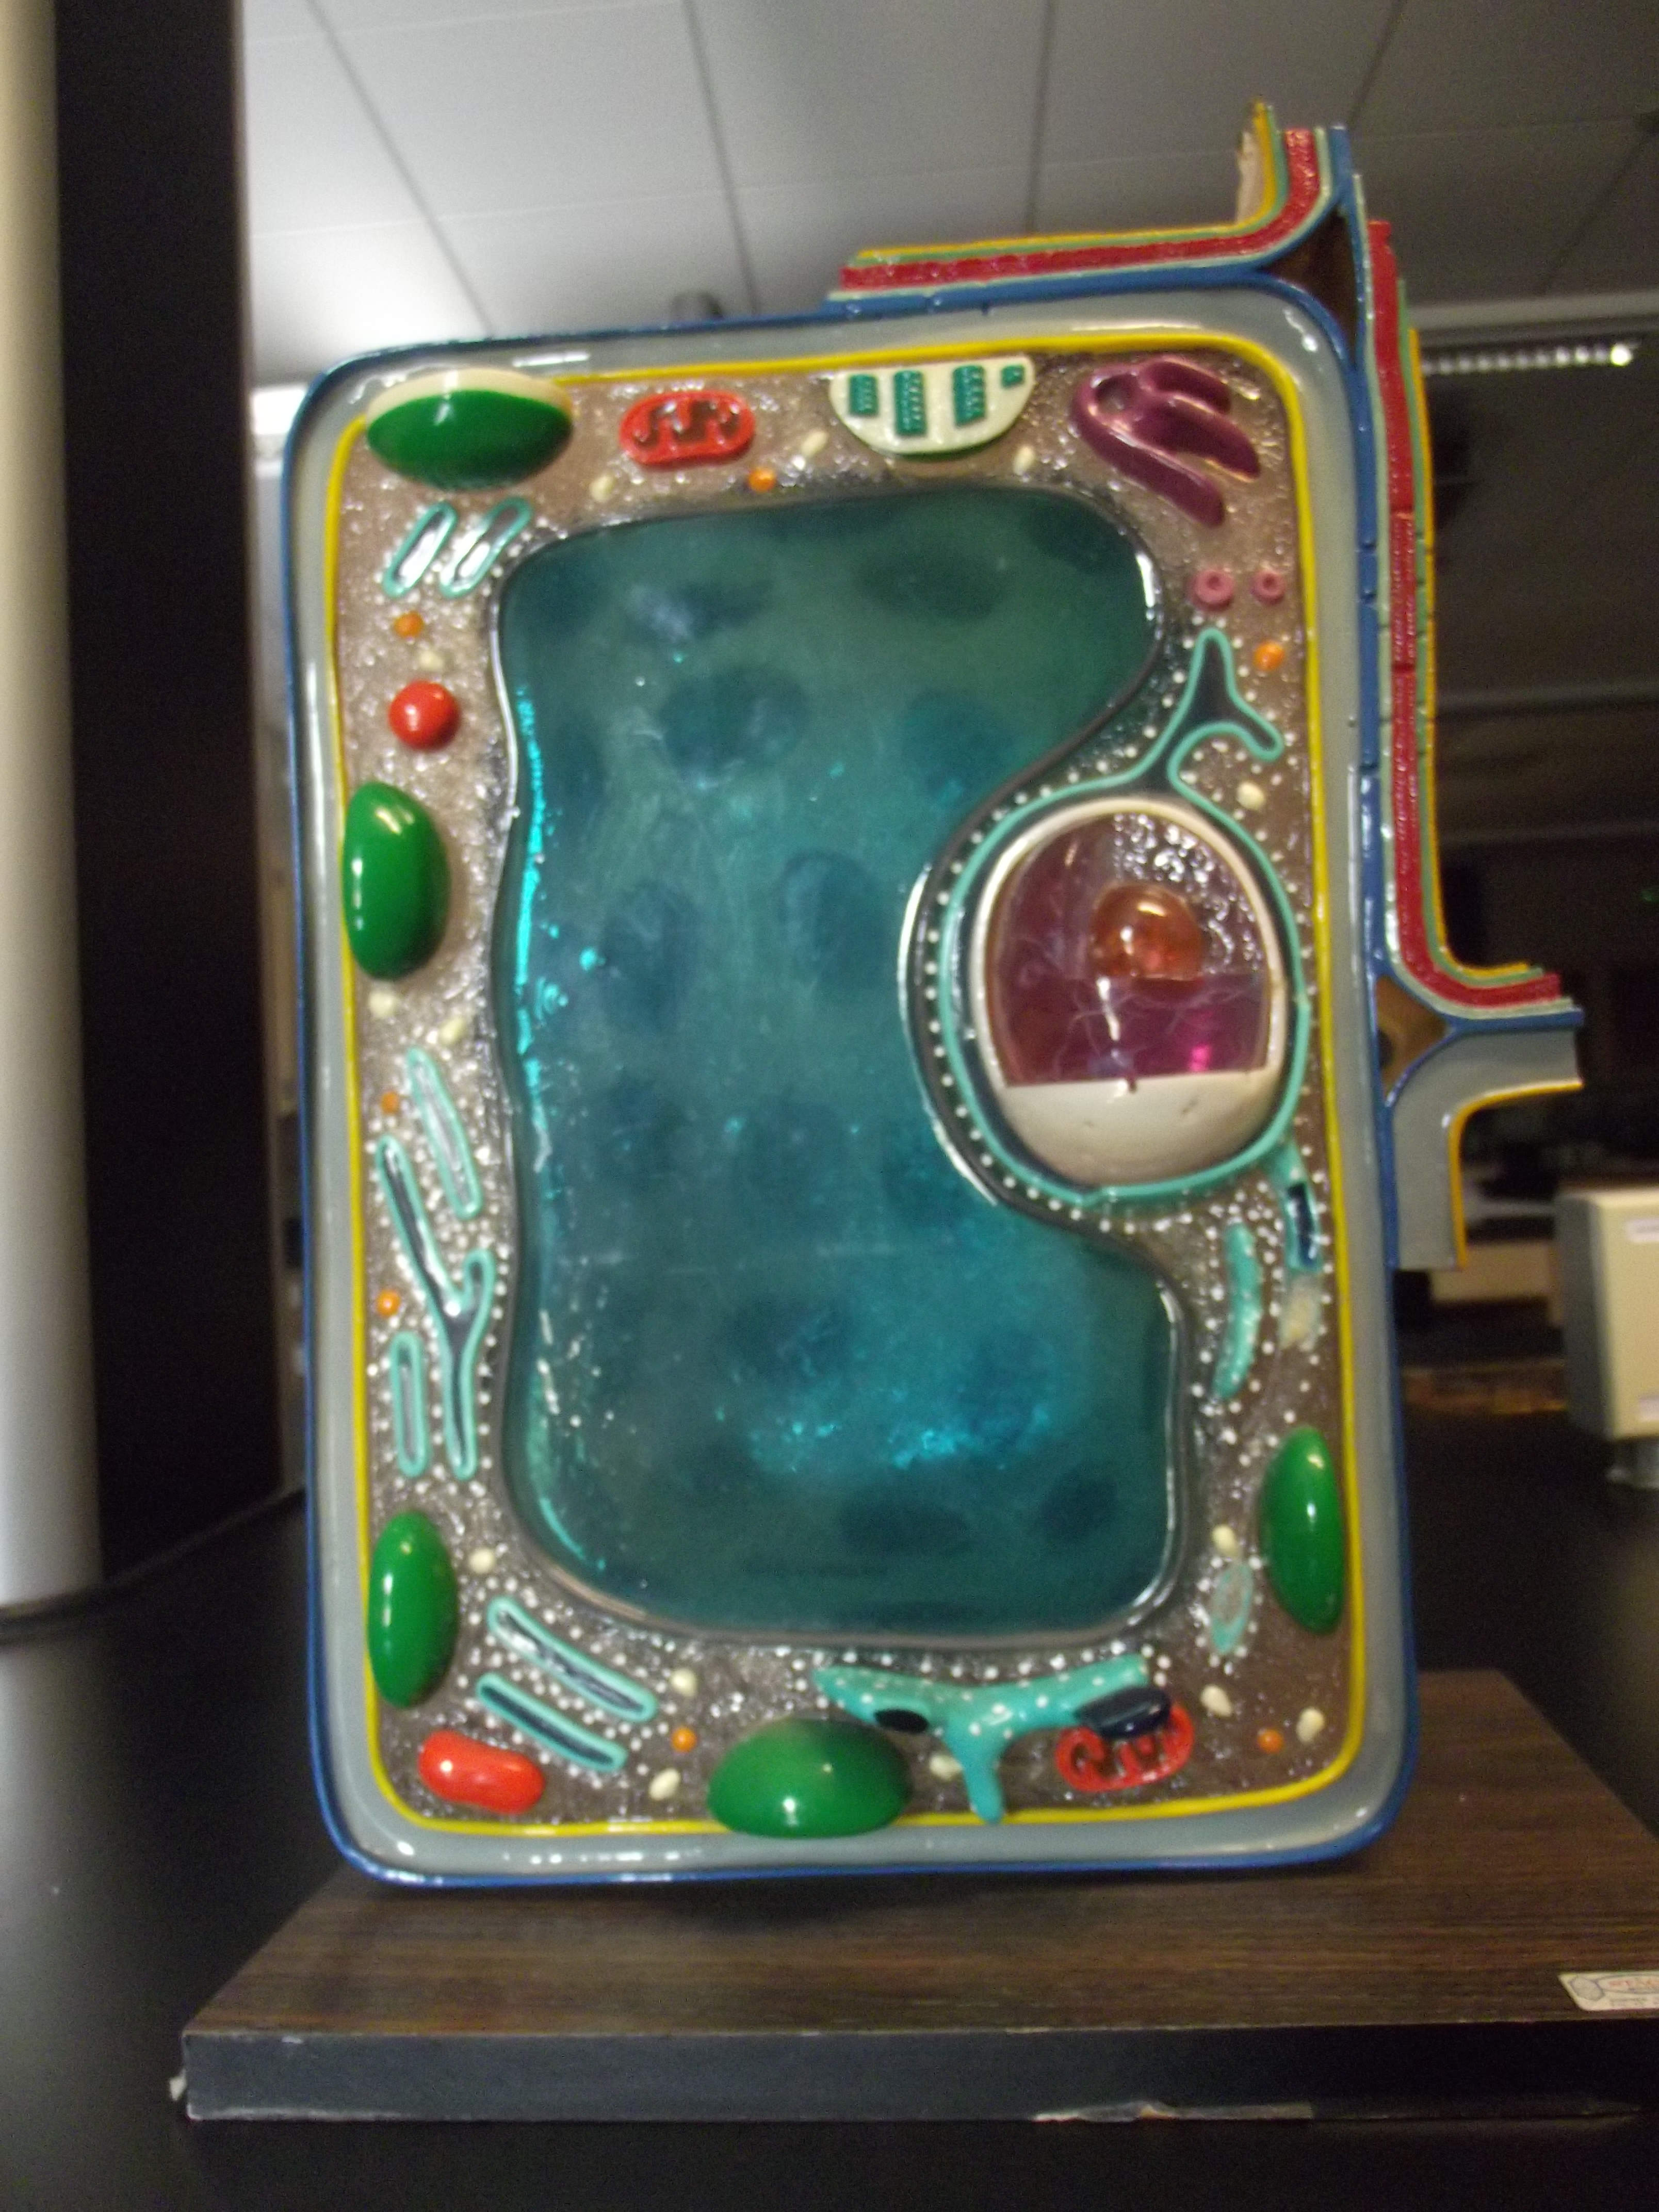 Plant cell 3d model wallpaper picture pictures to pin on pinterest